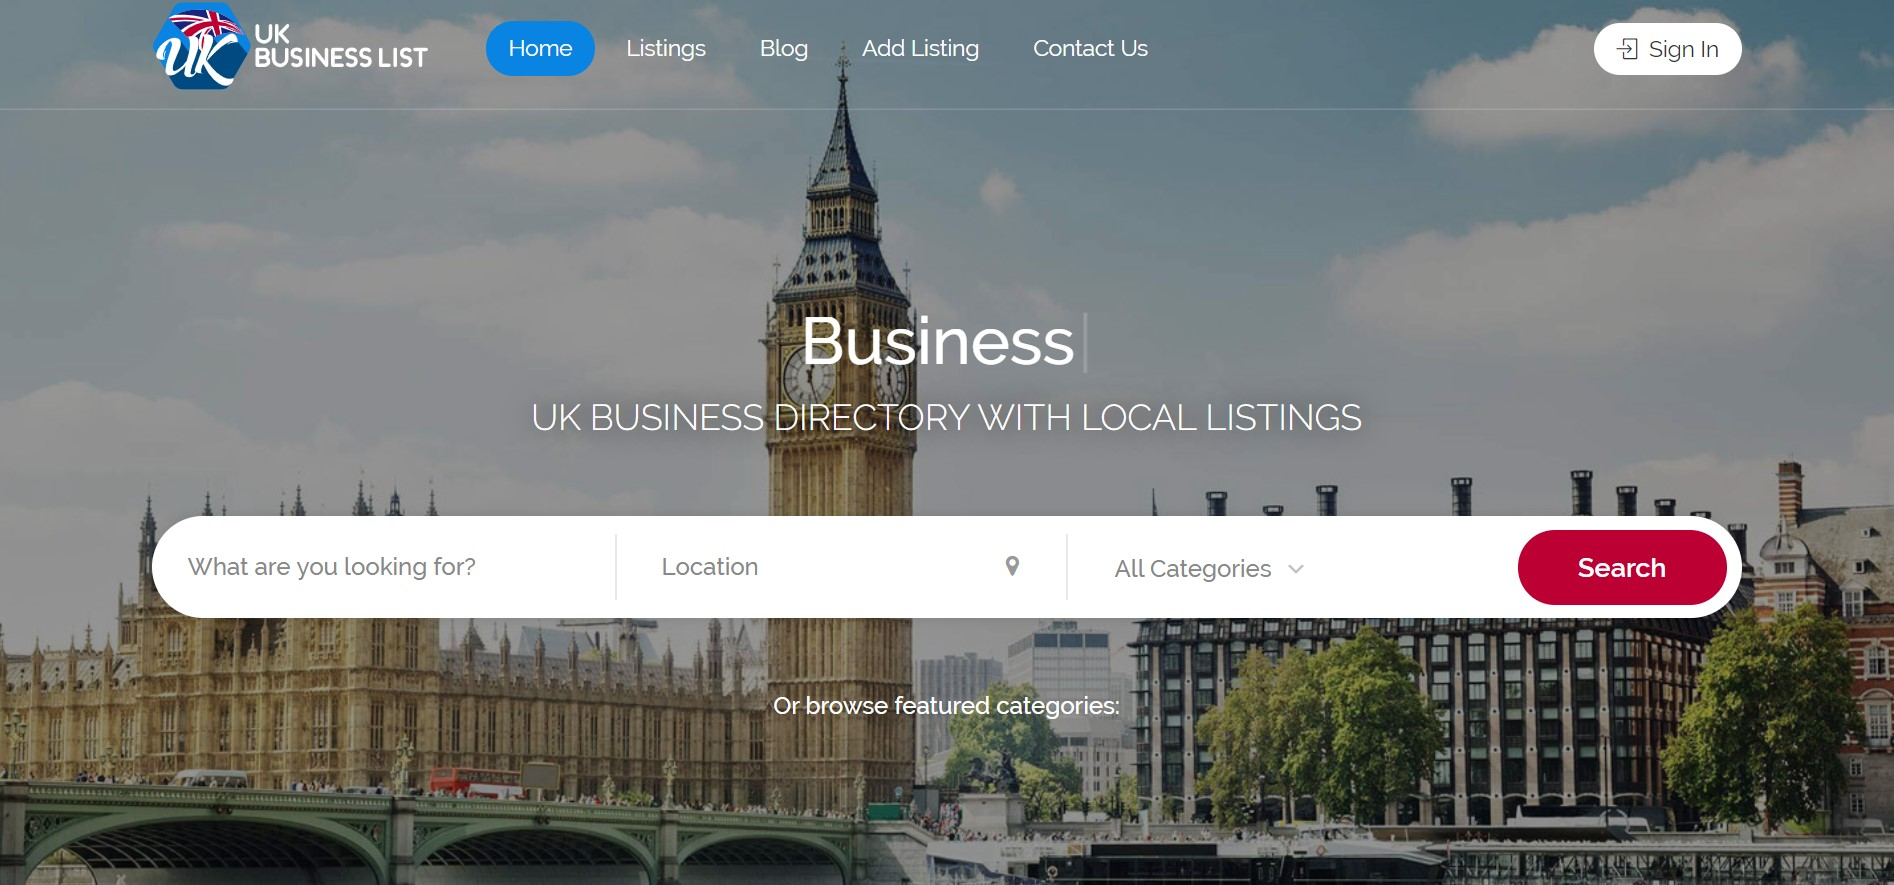 uk business list